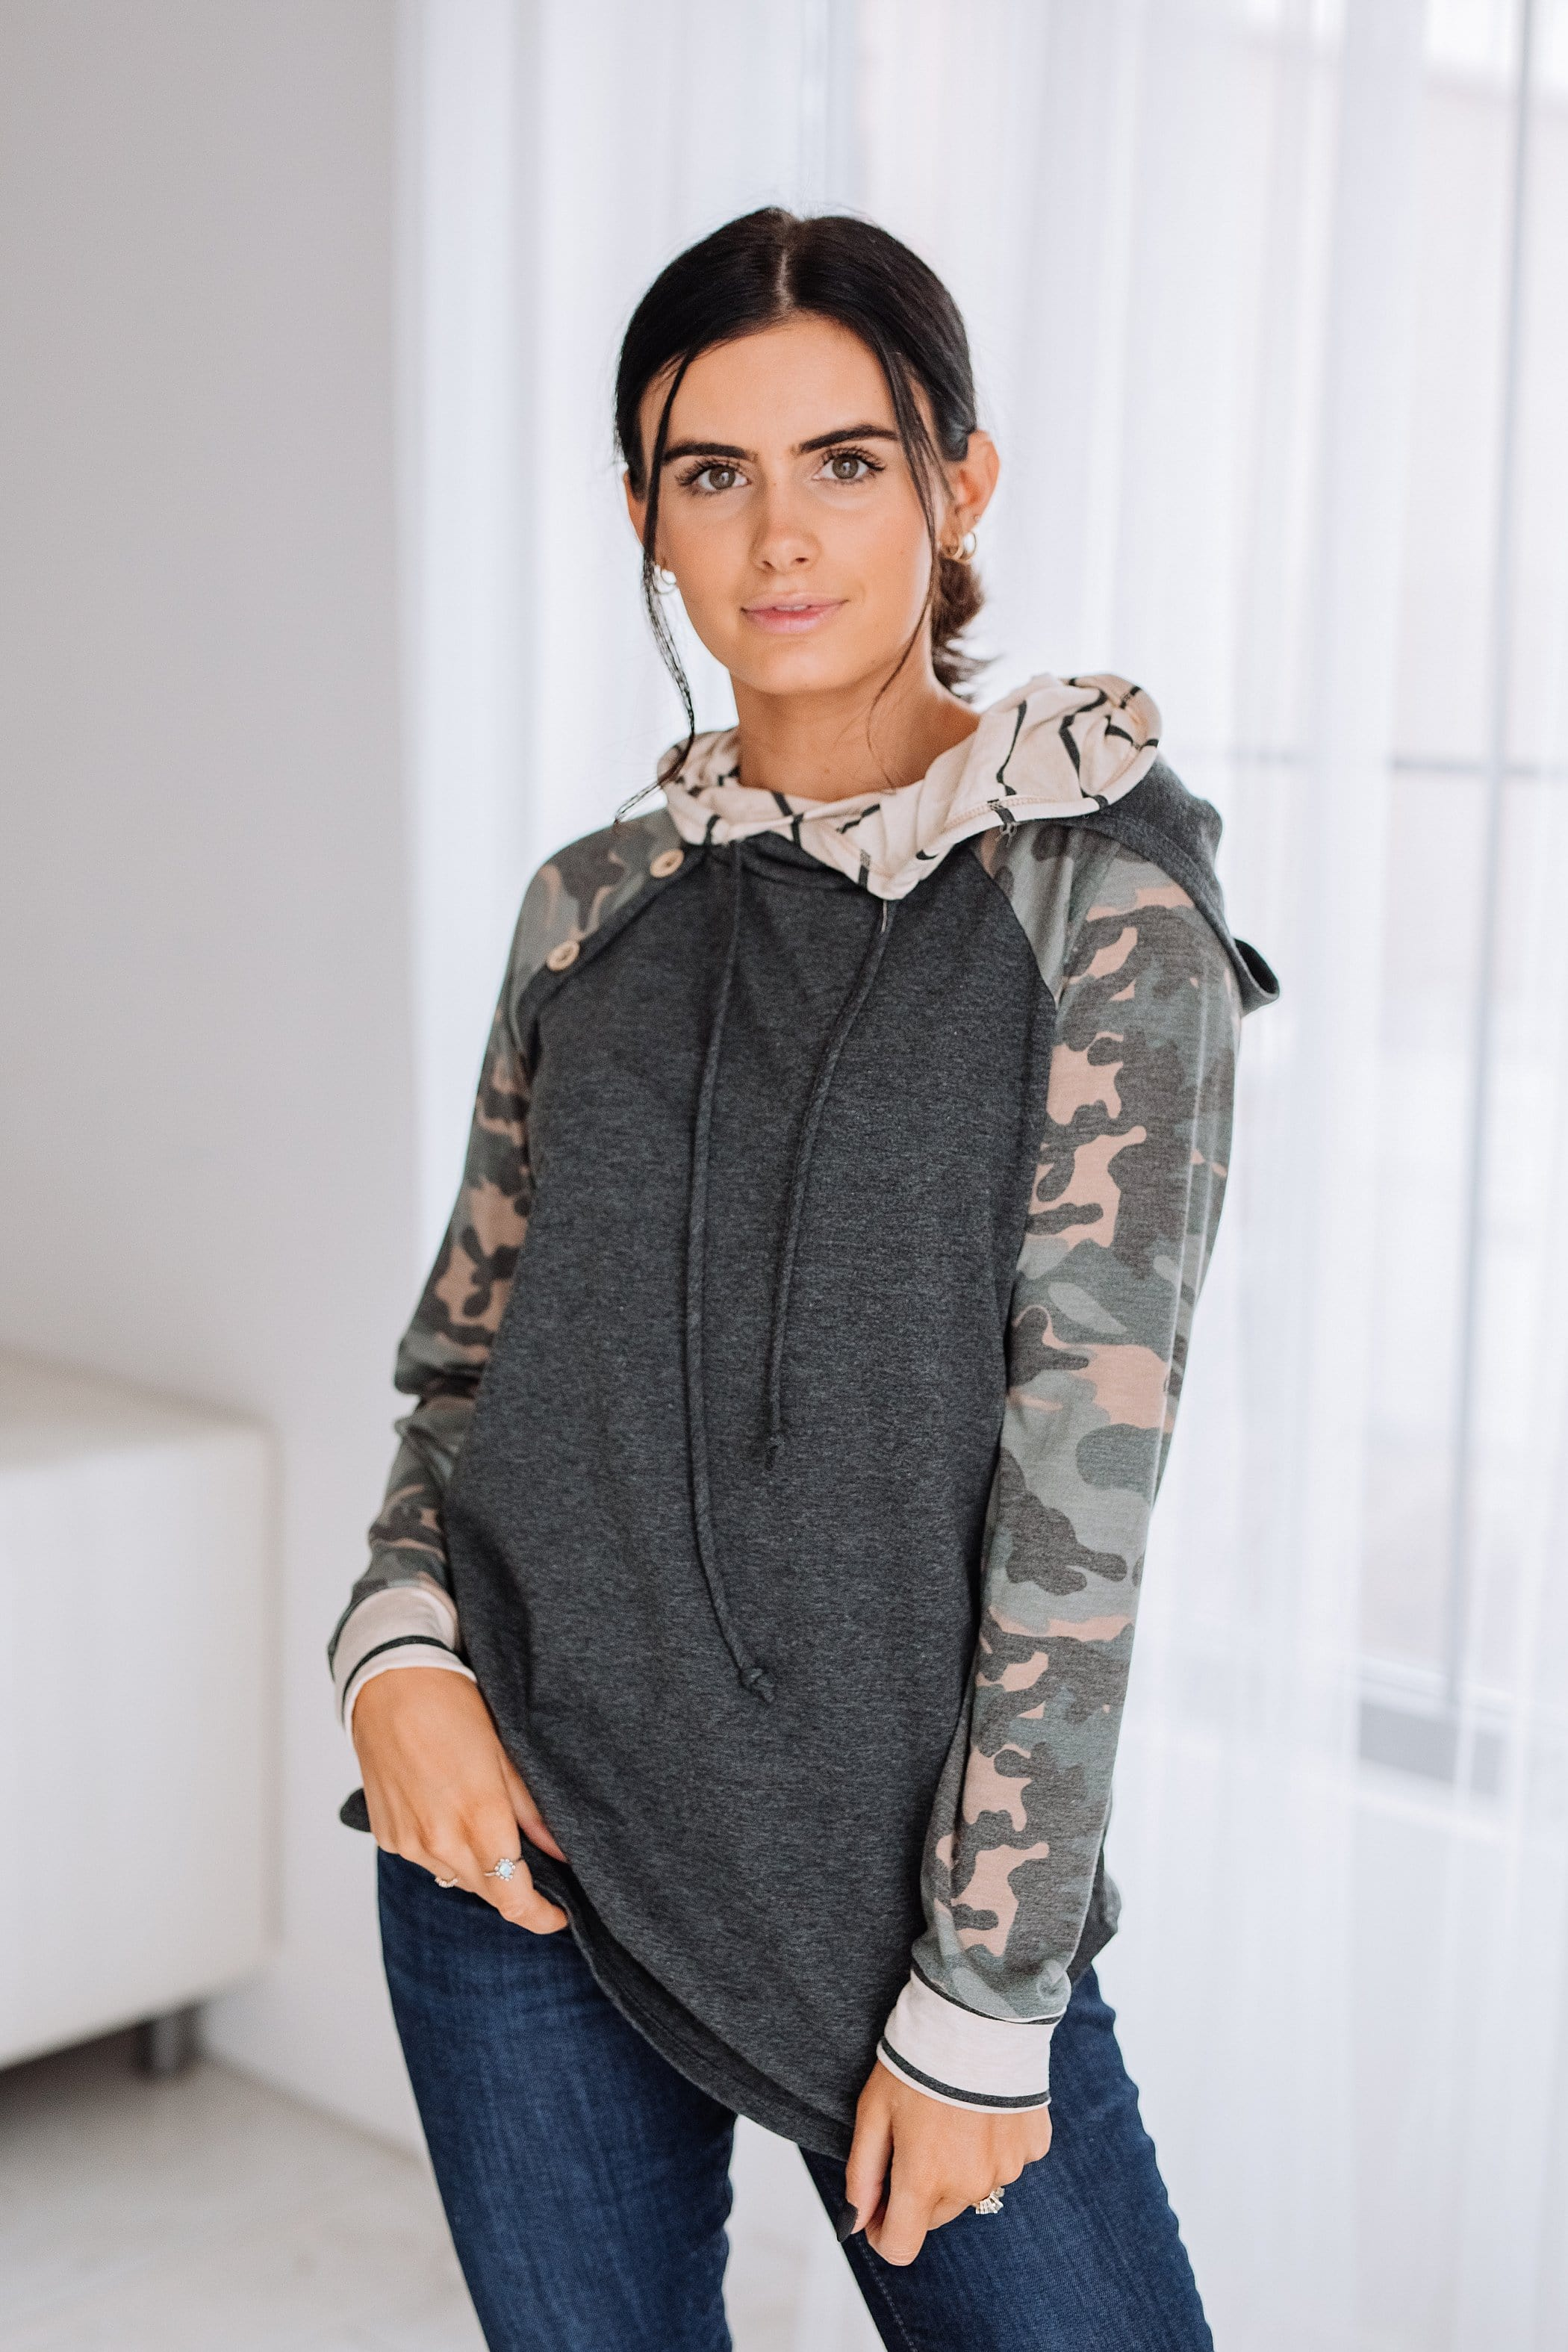 The Jericho Camo Hoodie in Charcoal